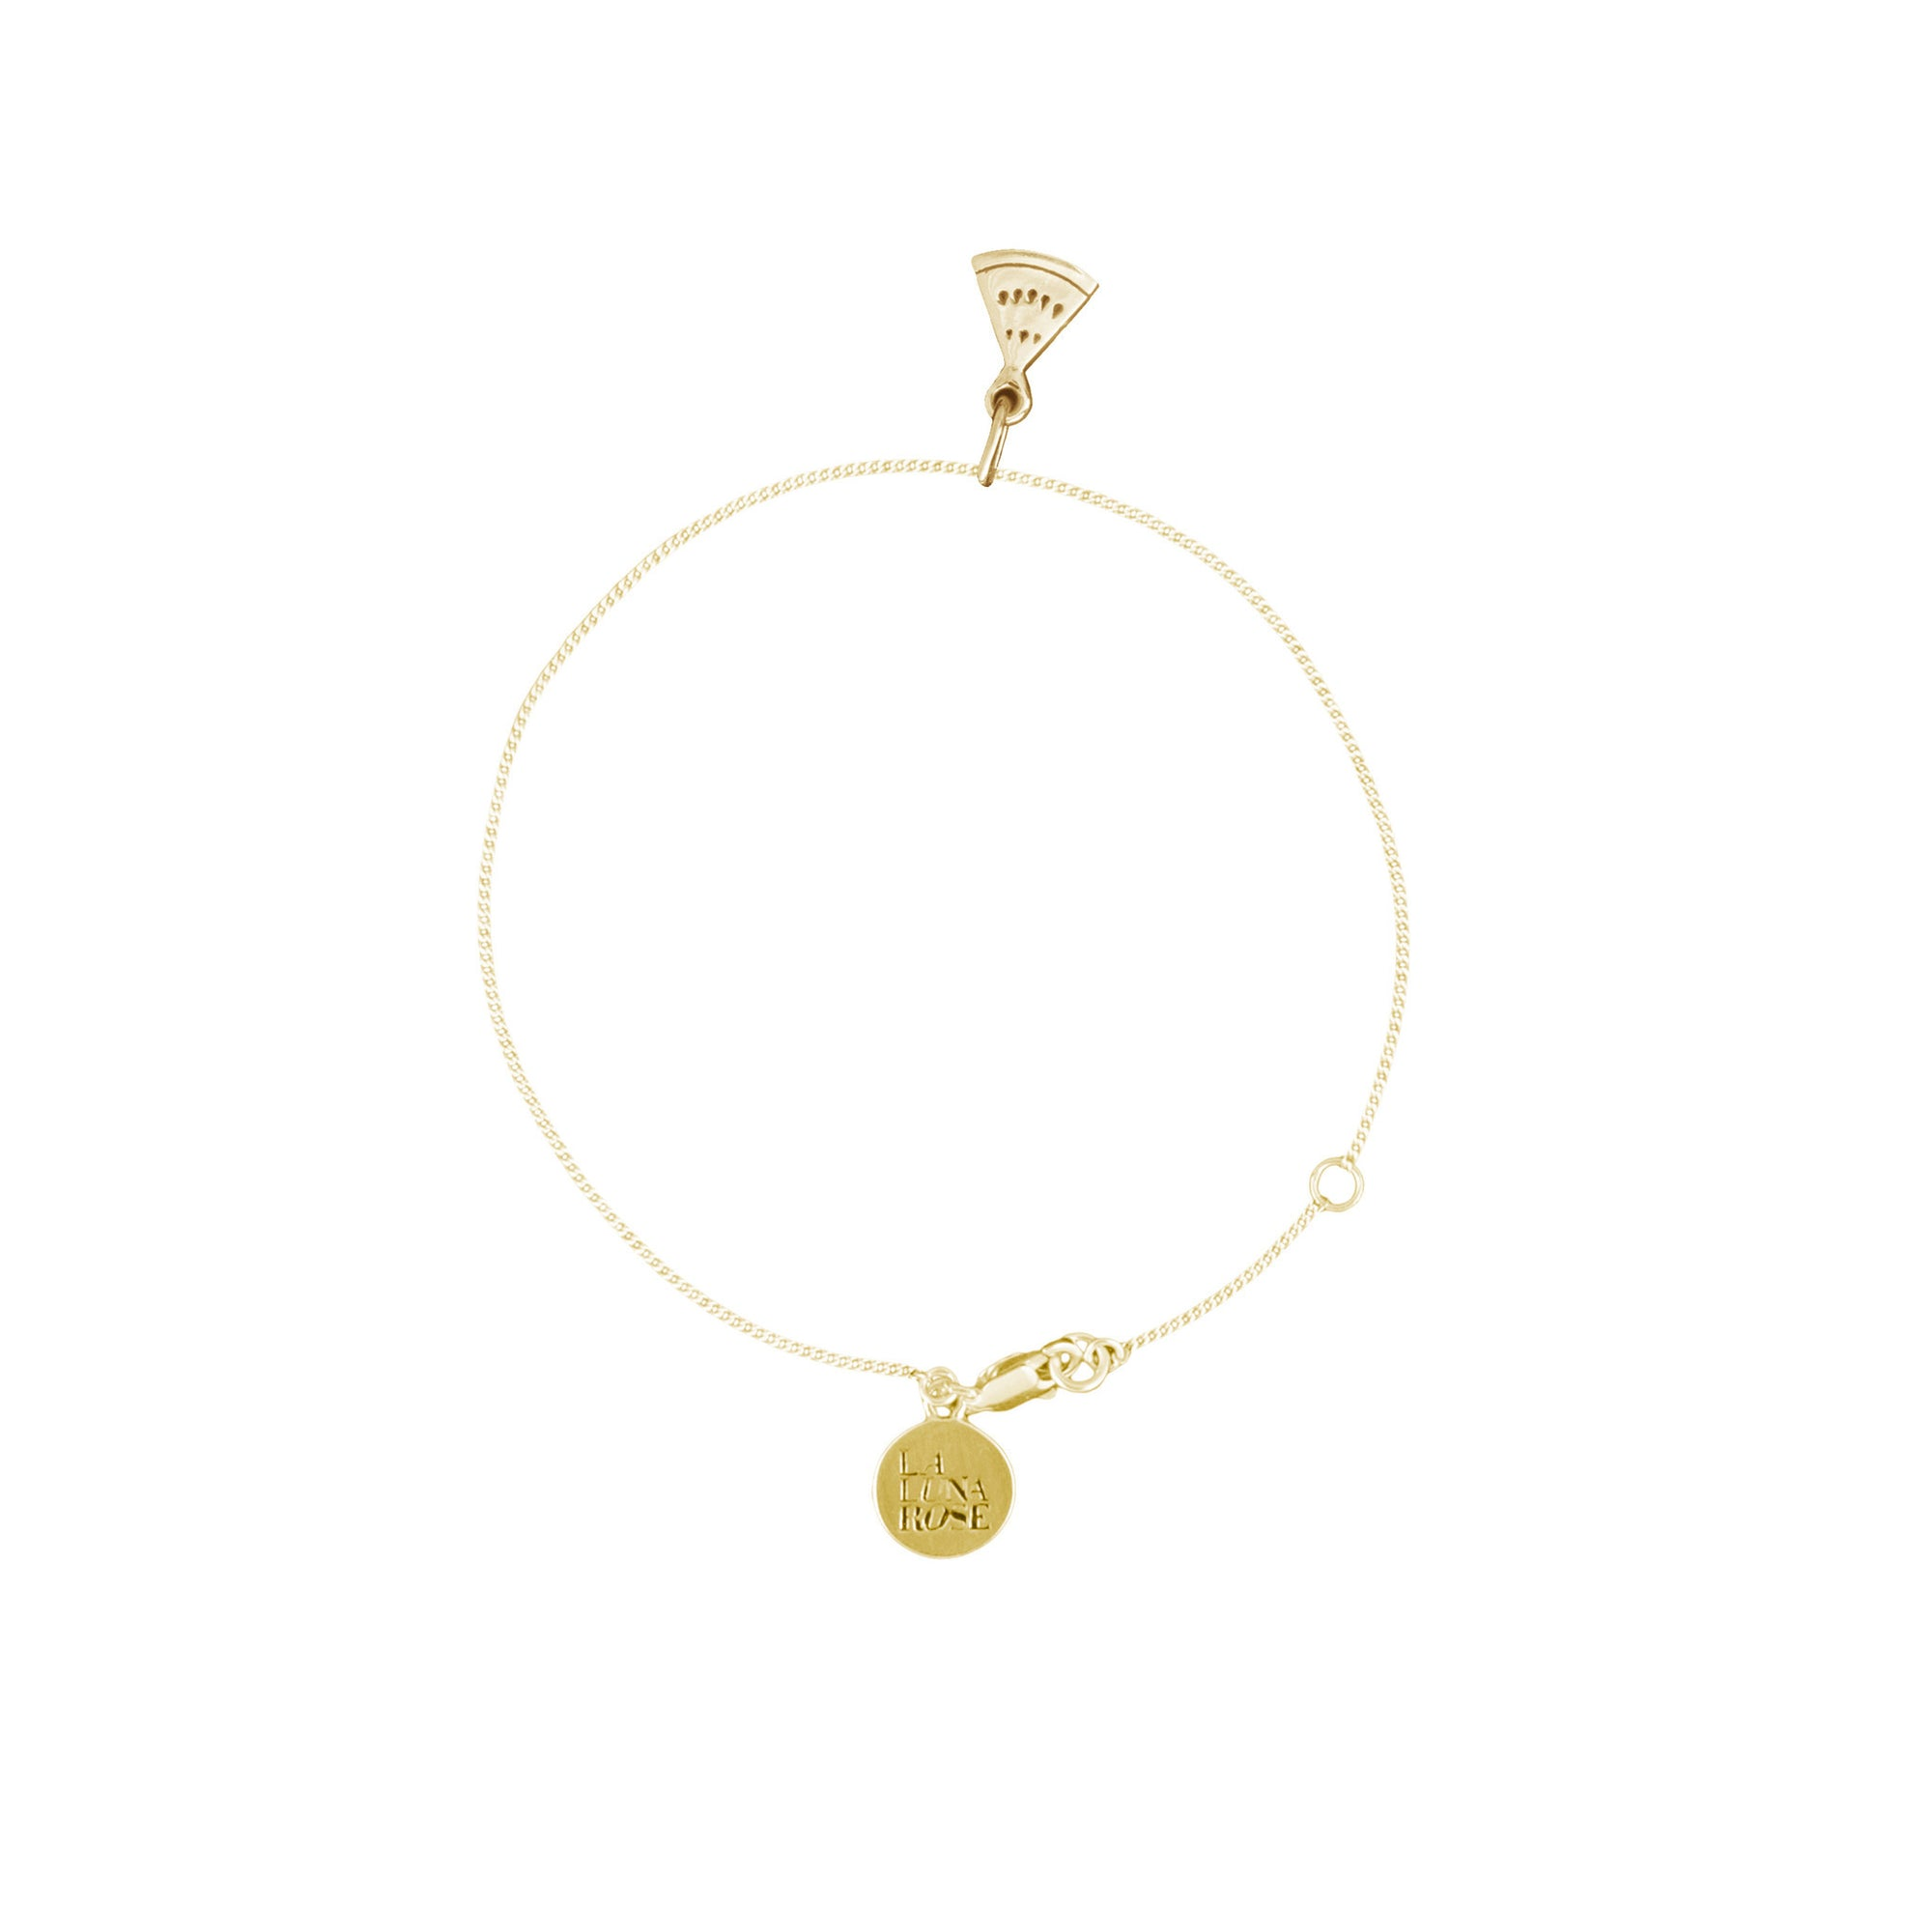 La Luna Rose Jewellery - Watermelon Charm Bracelet - Gold